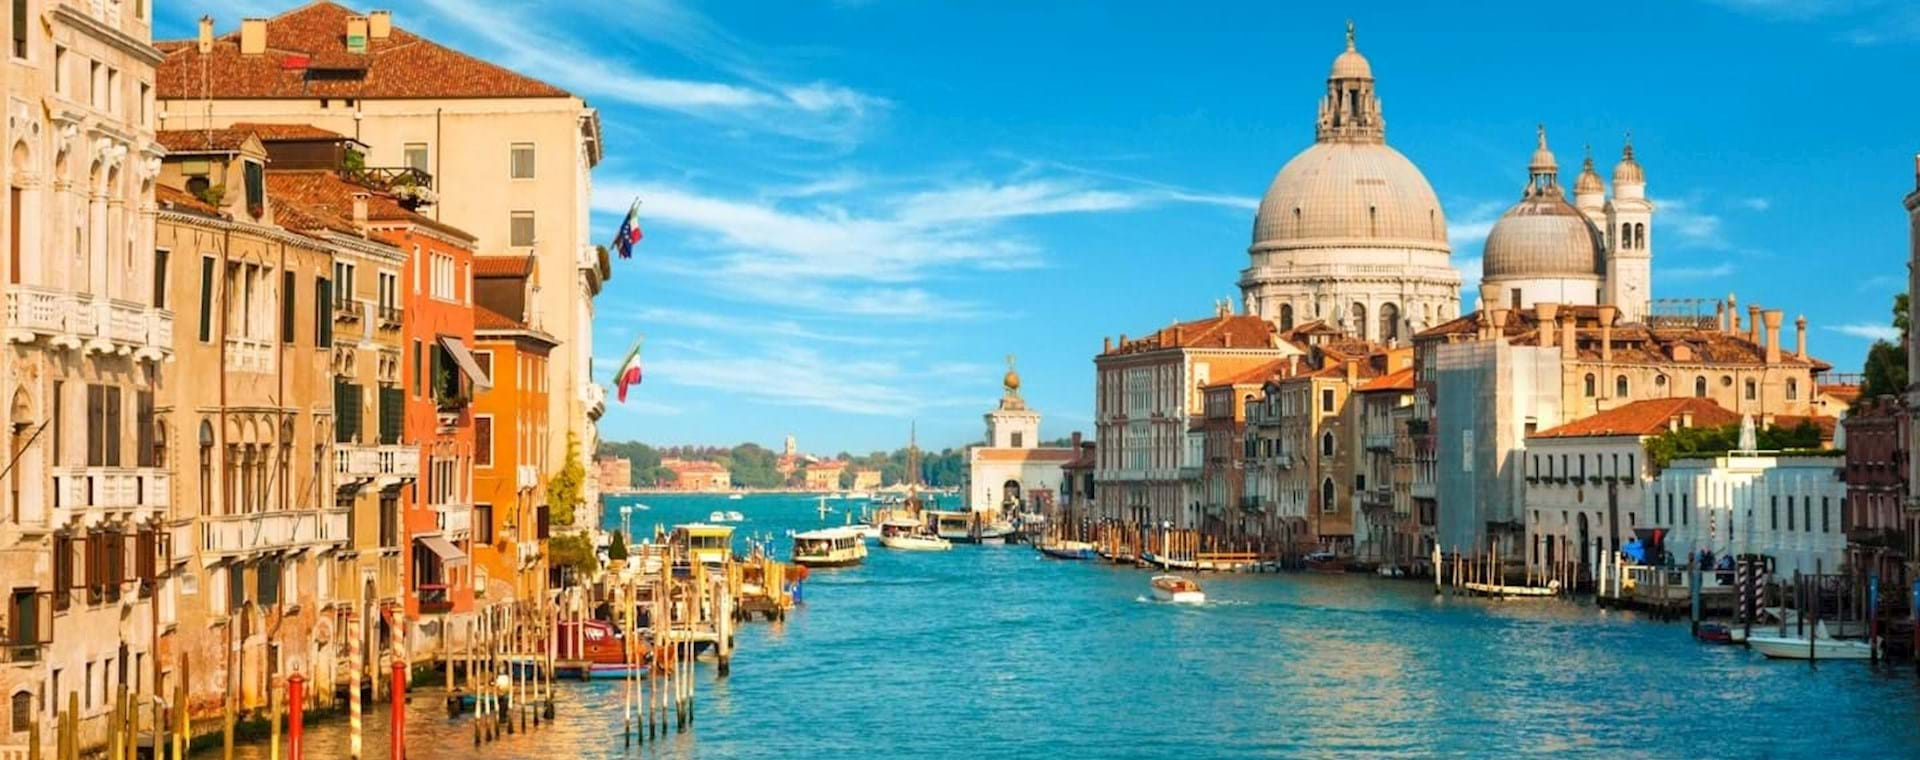 Day Trip: Best of Venice from Florence with St. Mark's Basilica